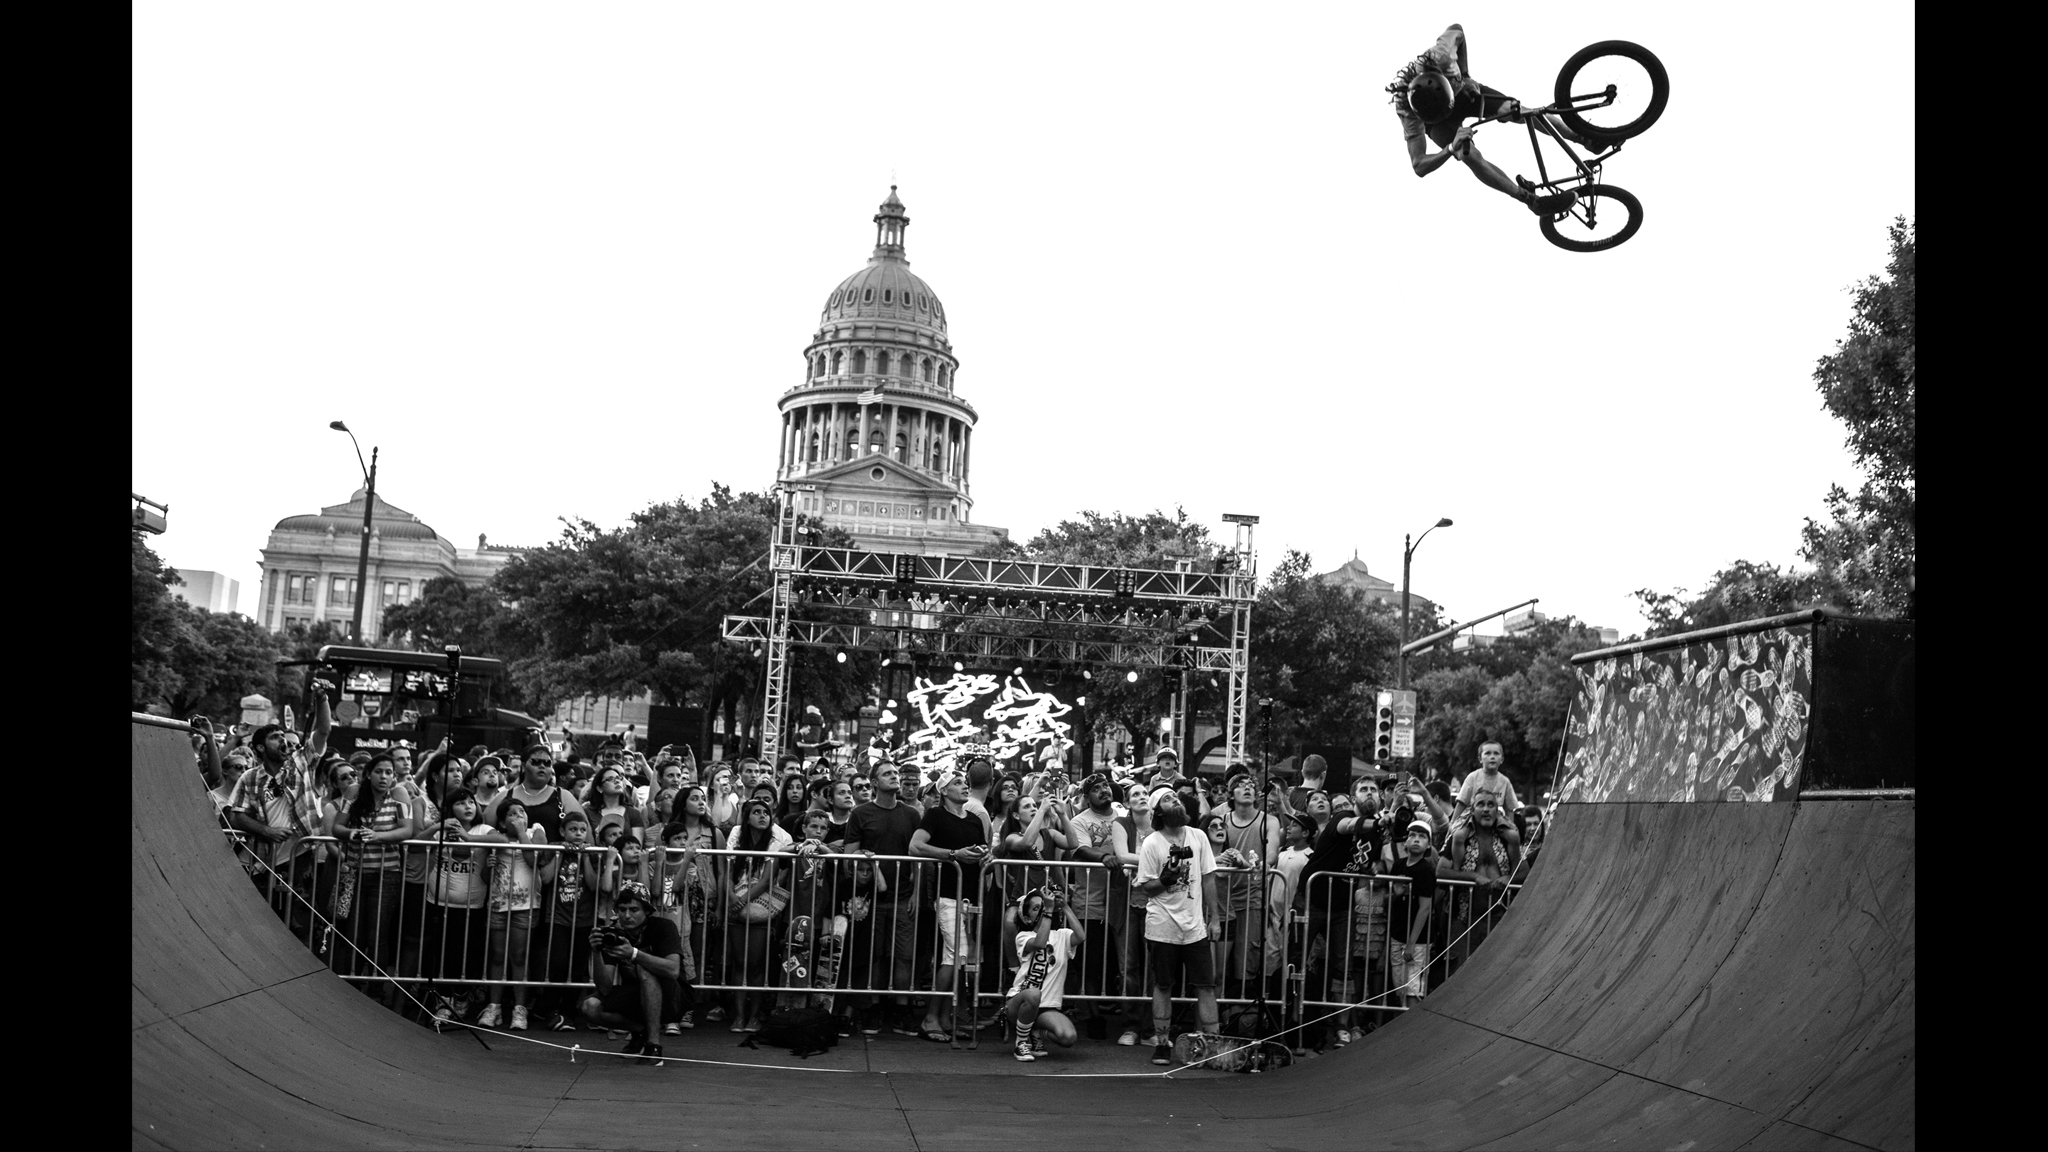 On June 5, action-sports fans in Austin, Texas, put on a BMX, skate and music rally to show why their city's the perfect host for the X Games in 2014. X Games competitor and Etnies BMX pro Tommy Dugan blasts an air in front of the state capitol to show his support for the X Games Austin bid.